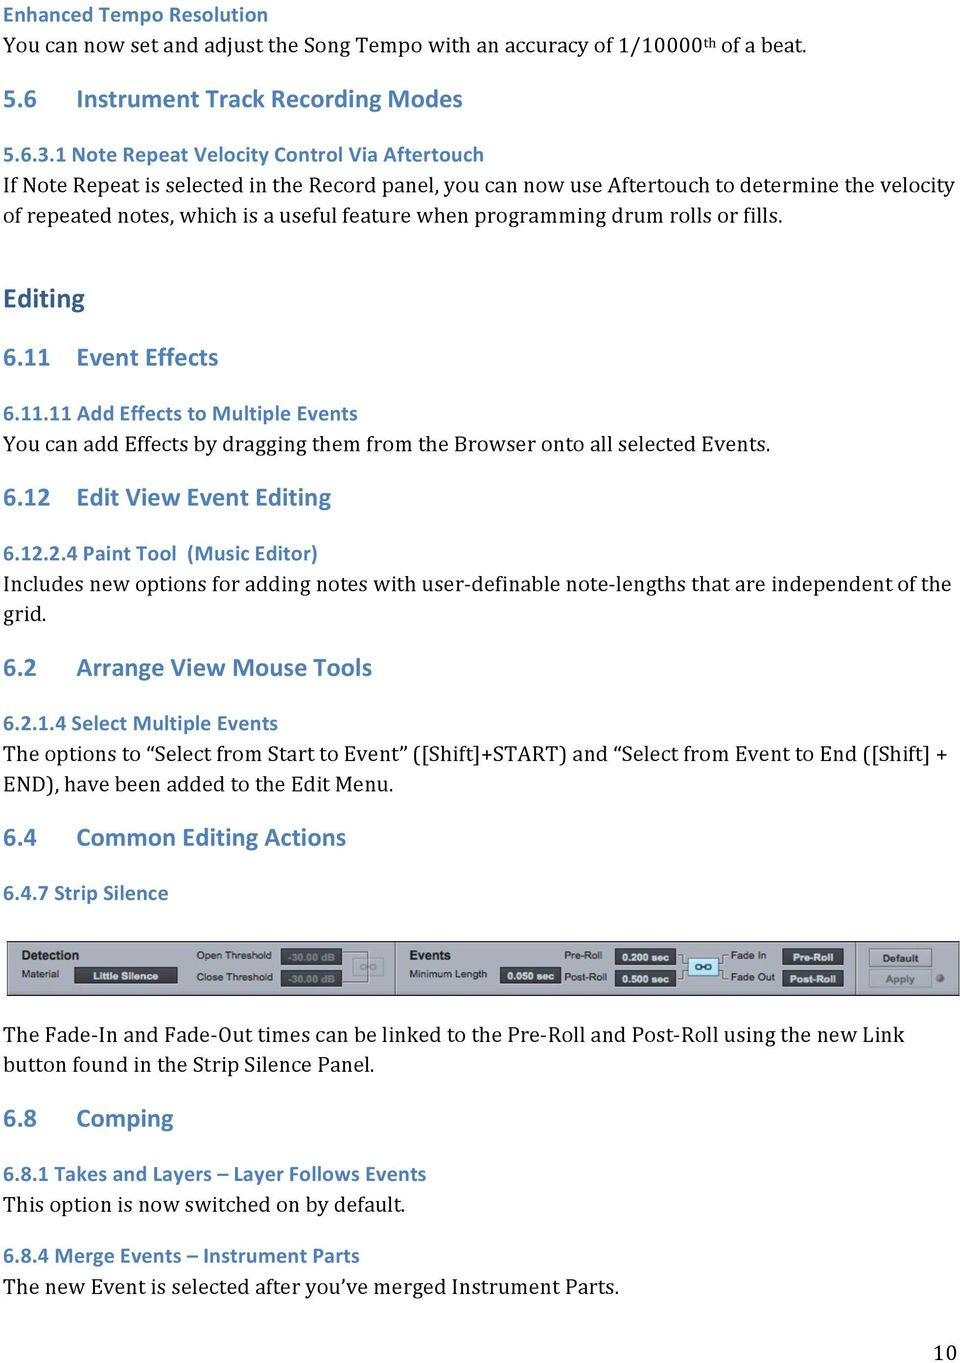 programming drum rolls or fills. Editing 6.11 Event Effects 6.11.11 Add Effects to Multiple Events You can add Effects by dragging them from the Browser onto all selected Events. 6.12 Edit View Event Editing 6.